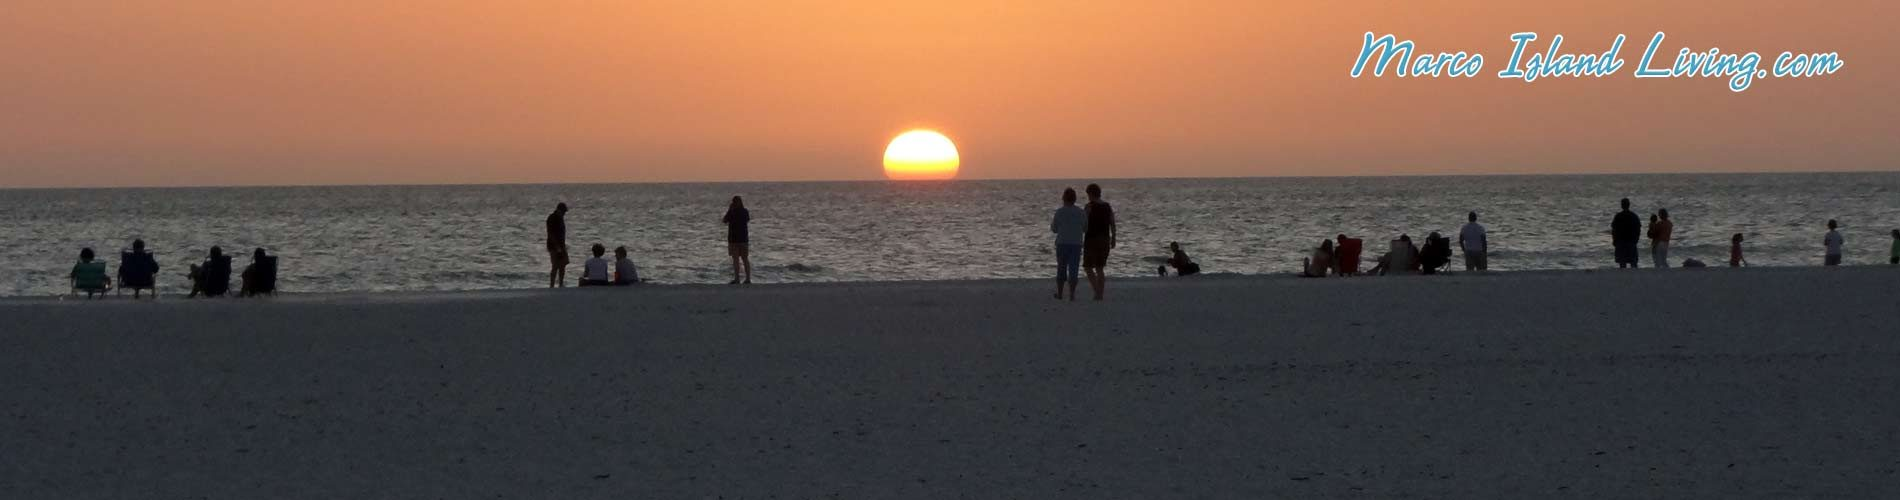 Visit Marco Island FL Vacation Rental Homes Restaurant Dining Family Attractions Sunset Cruises Everglades Fishing Tours Beachfront Hotels